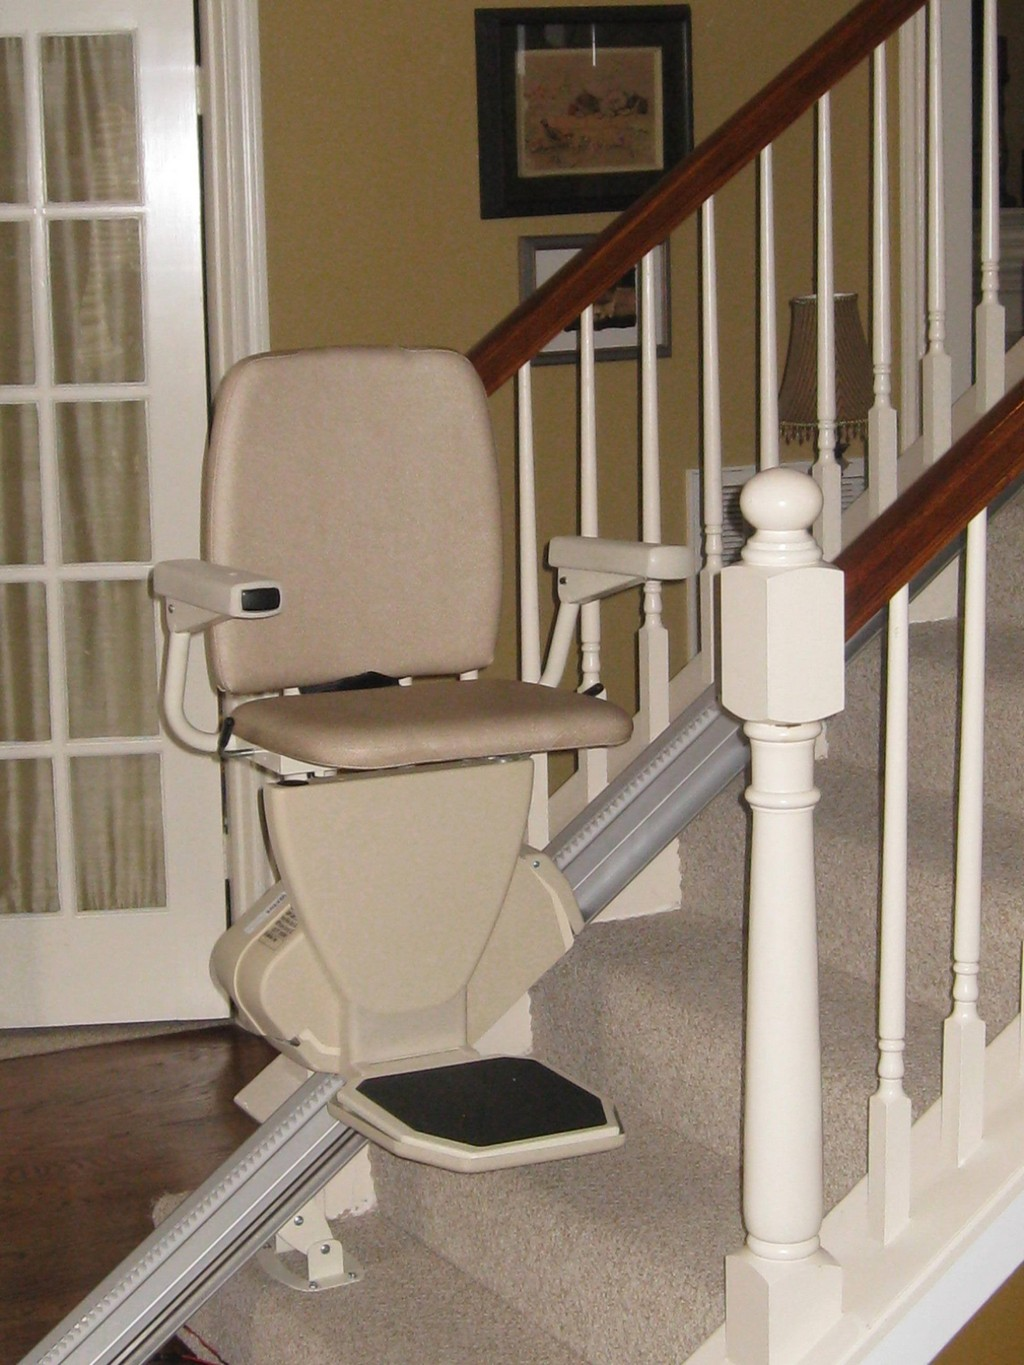 stair chair lift, new stairlifts for sale, meditek bruno stairlifts comparisons, freedom stair chair lift